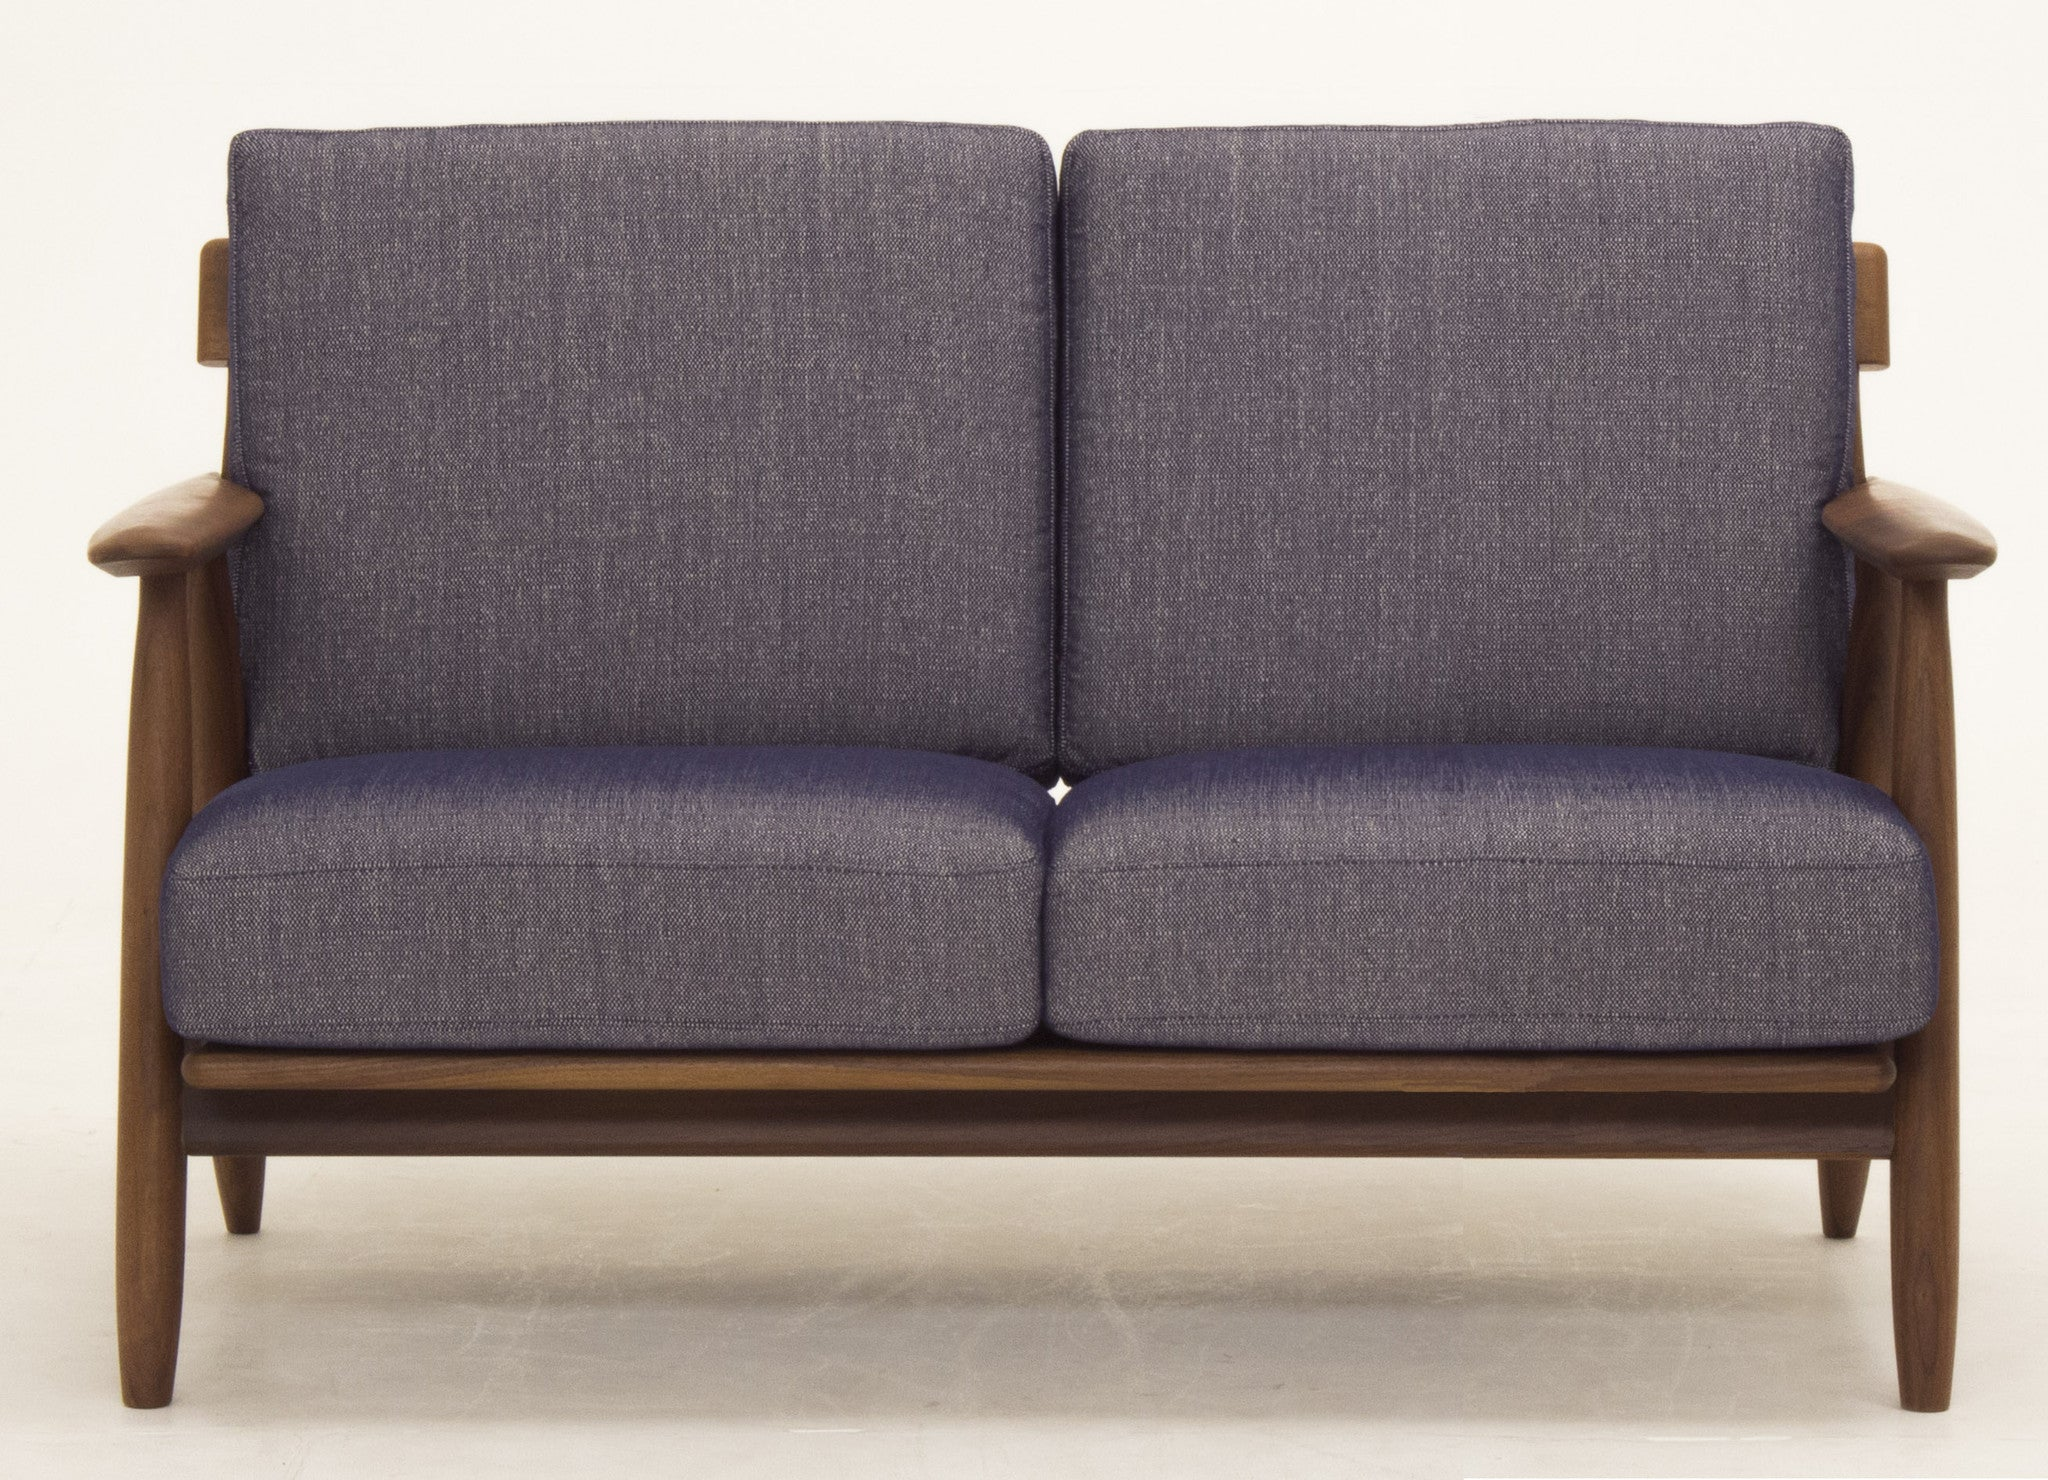 SOLID sofa LC030-LP